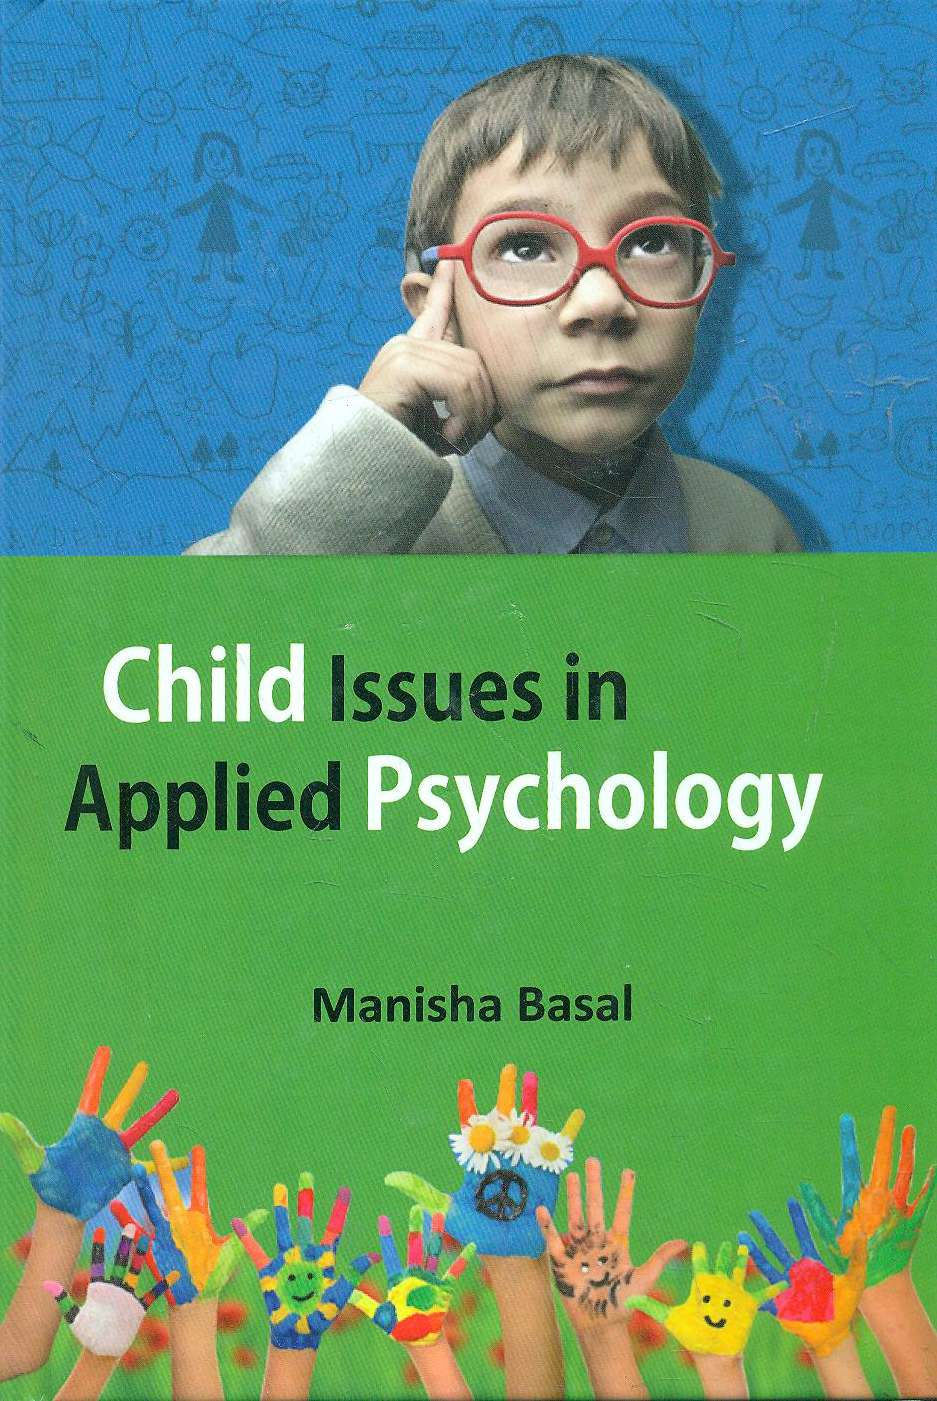 Child Issues in Applied Psychology